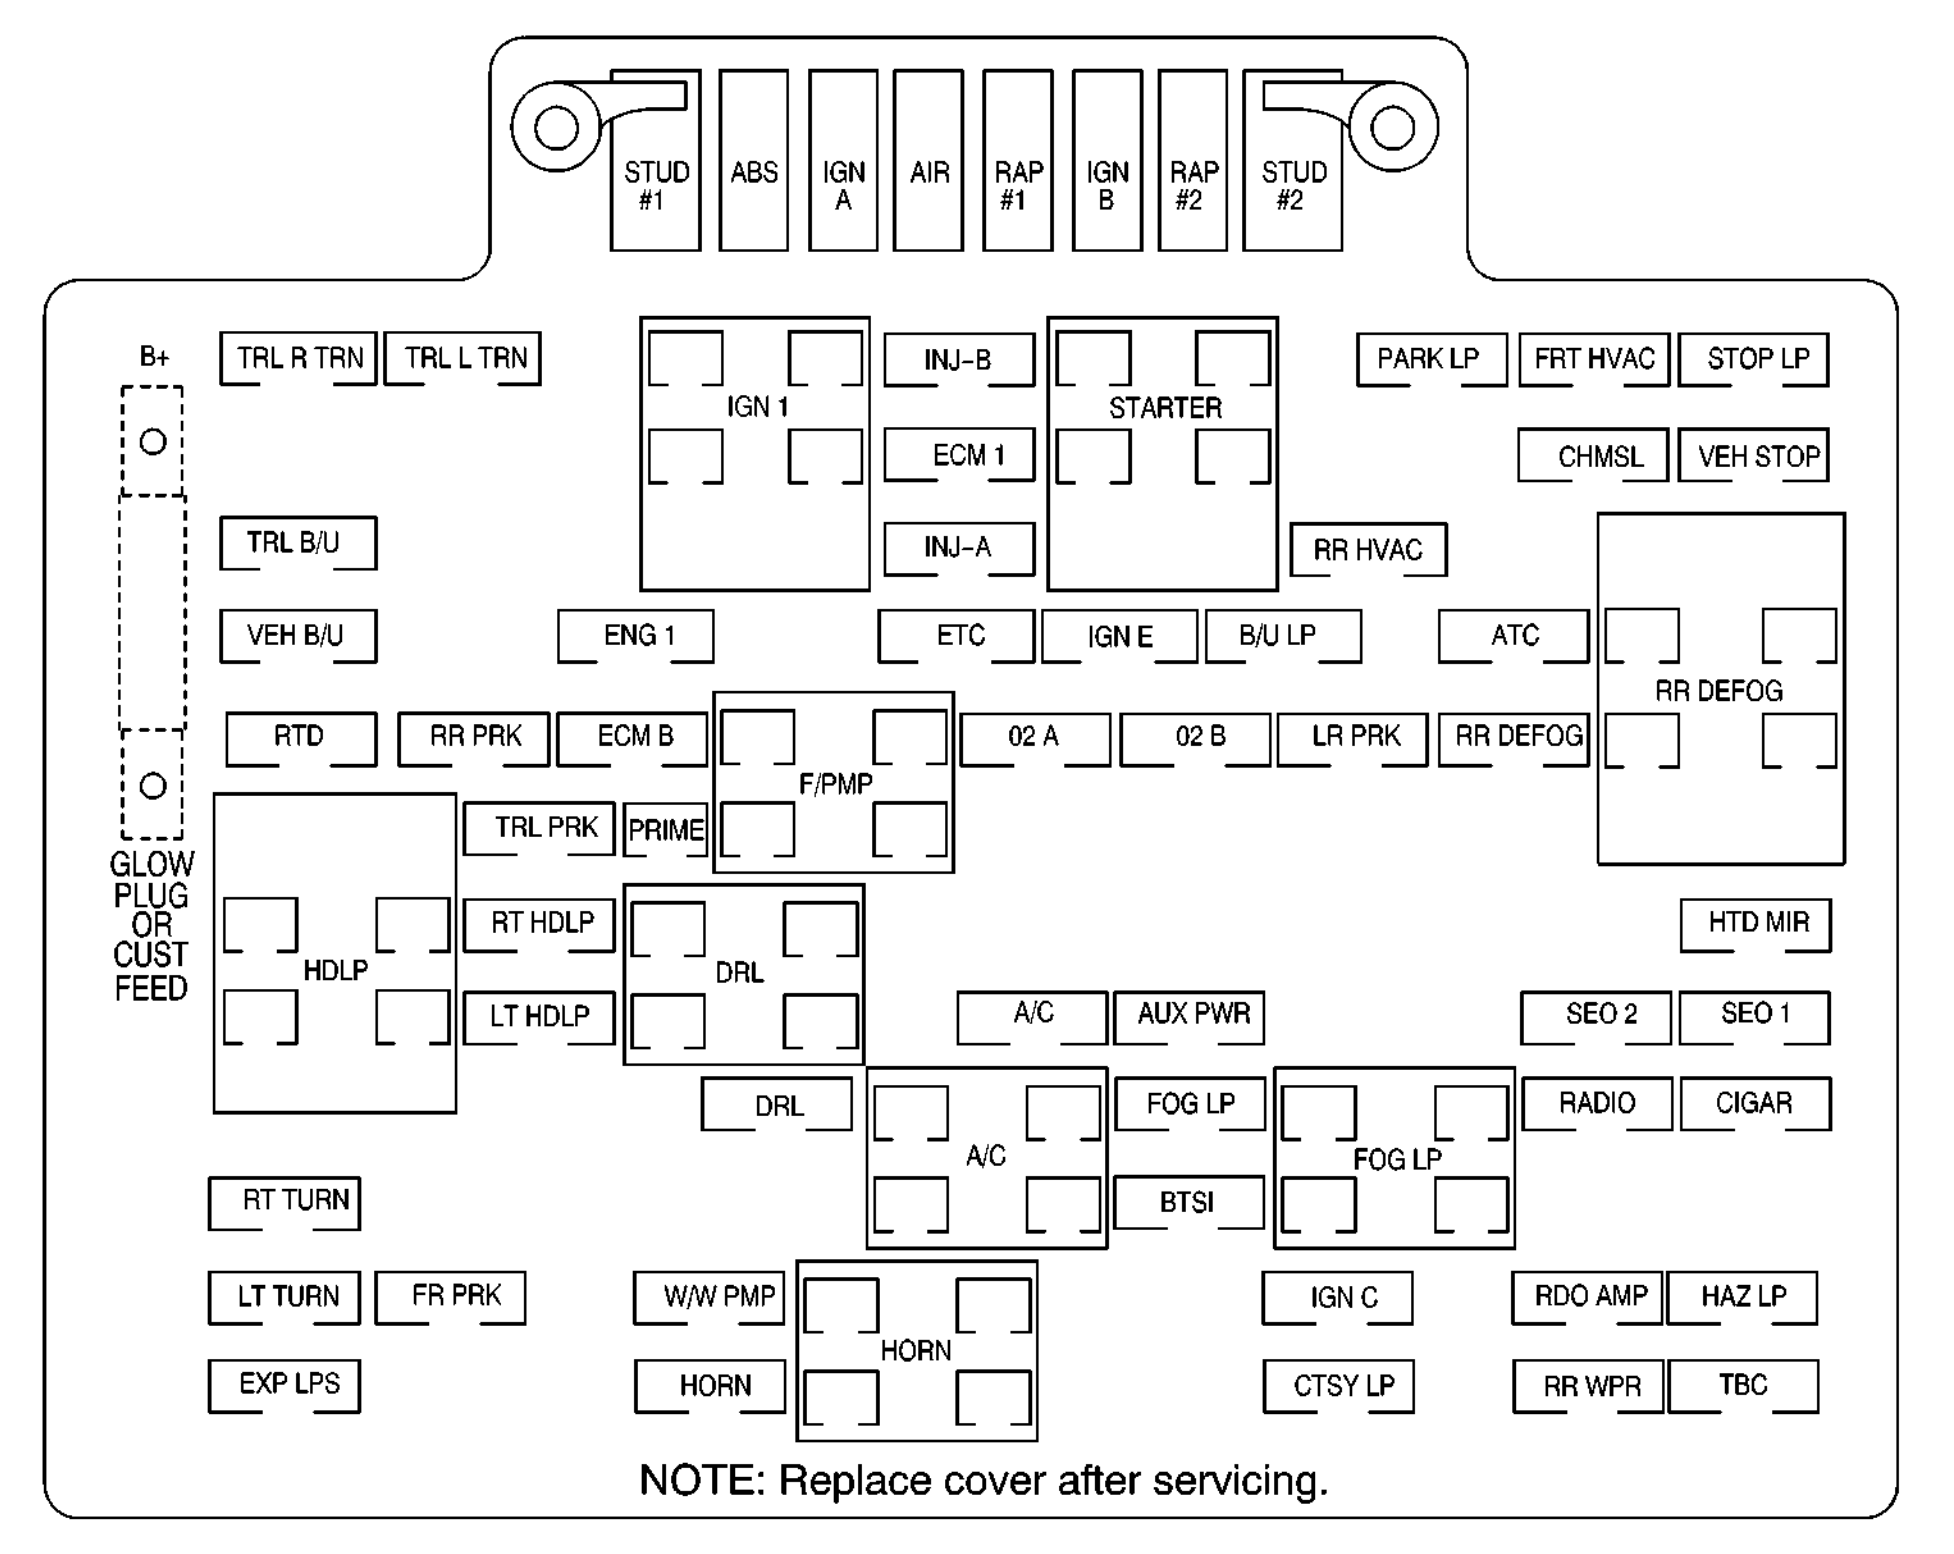 02 Suburban Fuse Diagram - Wiring Diagram Table on 2002 silverado lights, 2002 silverado engine, 2002 silverado radio wiring diagram, 2002 silverado wiring harness, 2002 silverado 1500 wiring diagram, 2002 silverado fuel pump wiring, 2002 silverado fuse box diagram, 2002 silverado trailer wiring, 2002 silverado stereo wiring diagram,